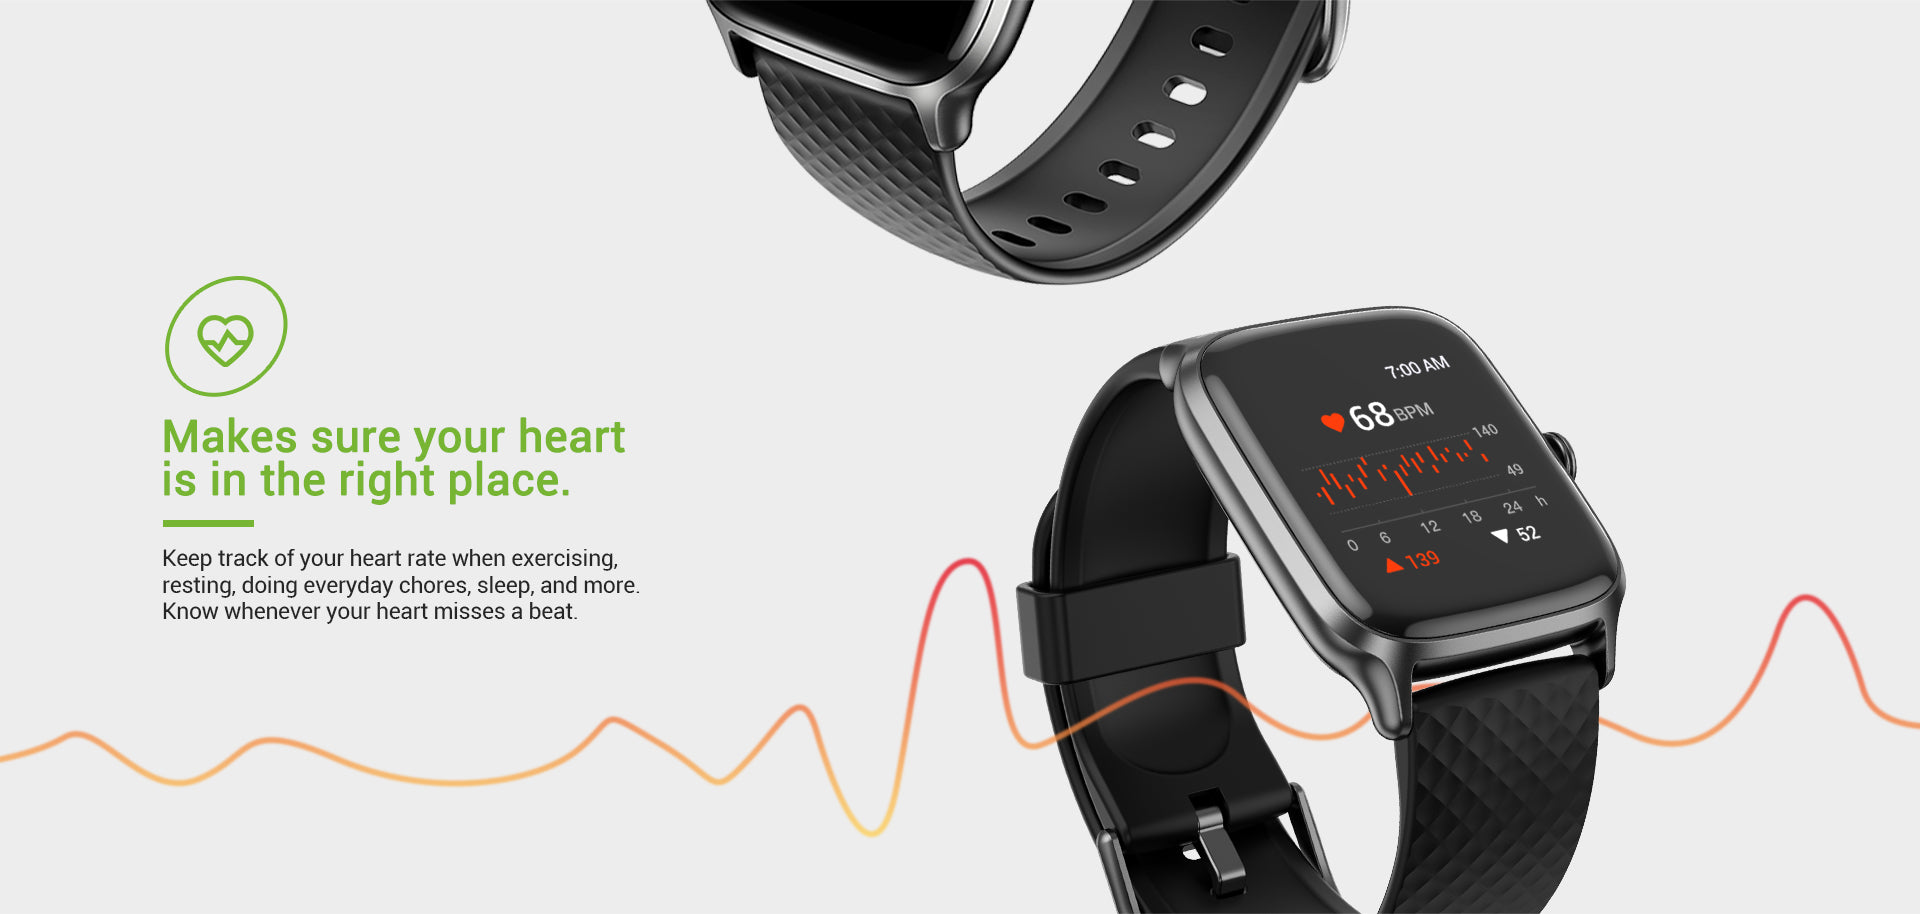 Keep track of your heart rate when exercisingresting, doing everyday chores, sleep, and moreKnow whenever your heart misses a beat.